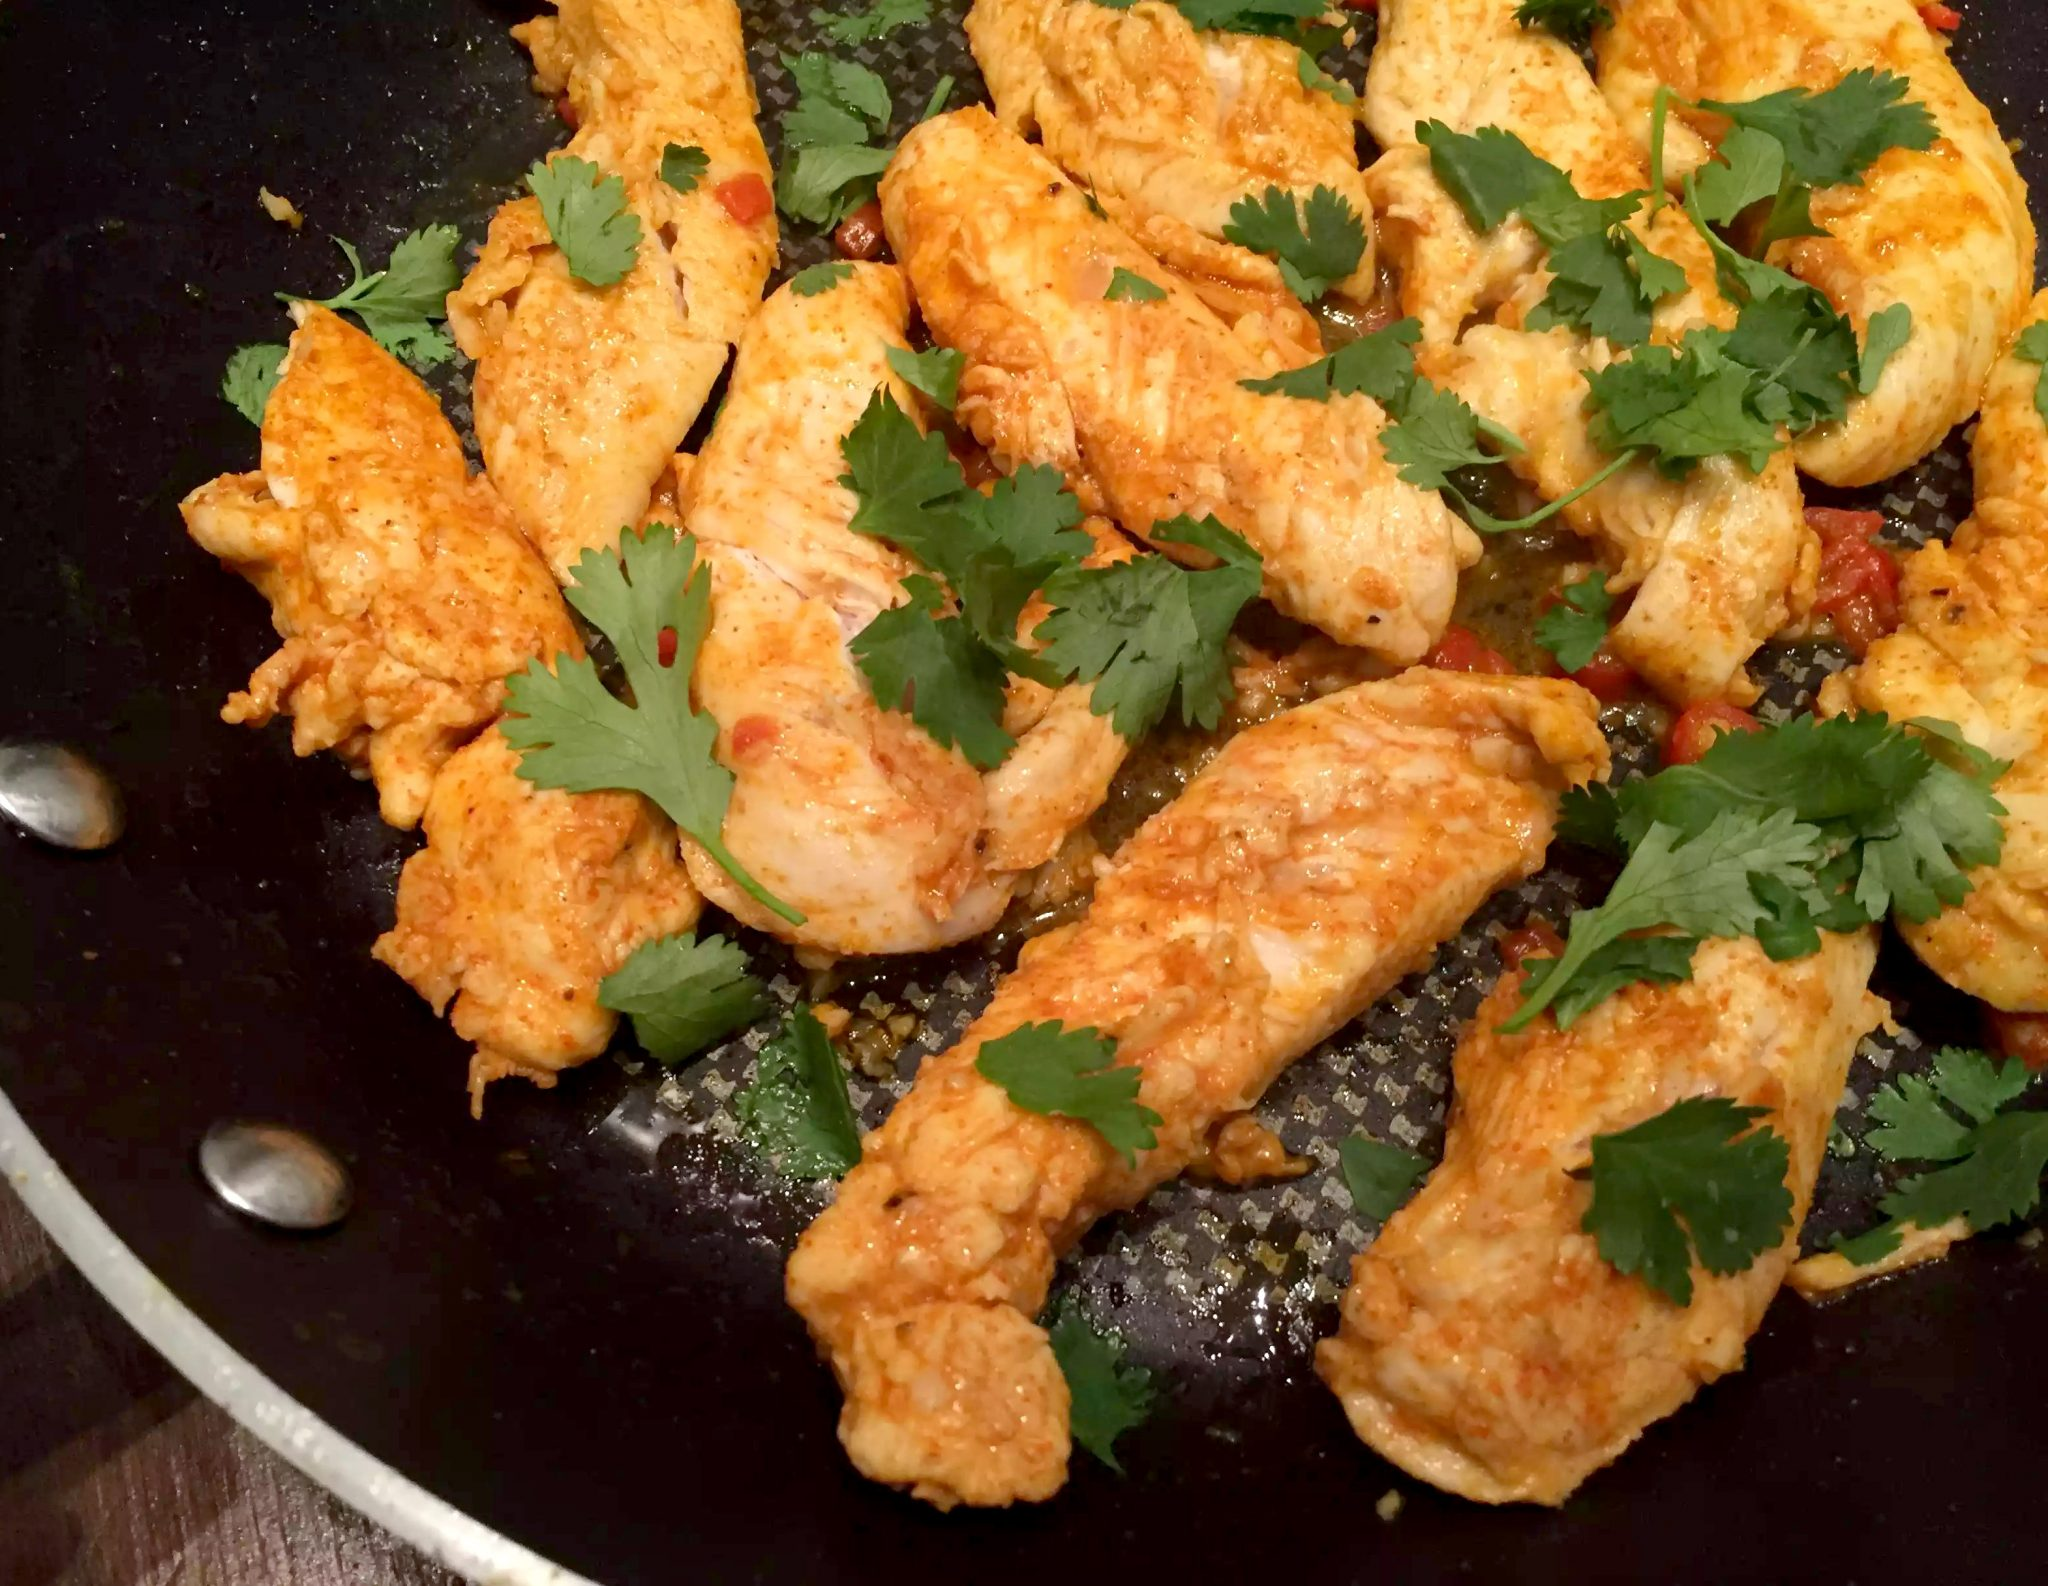 Lime & Paprika marinated Chicken from Emma Eats & Explores - SCD, Paleo, Dairy-Free, Gluten-Free, Grain-Free, Sugar-Free, Clean-Eating